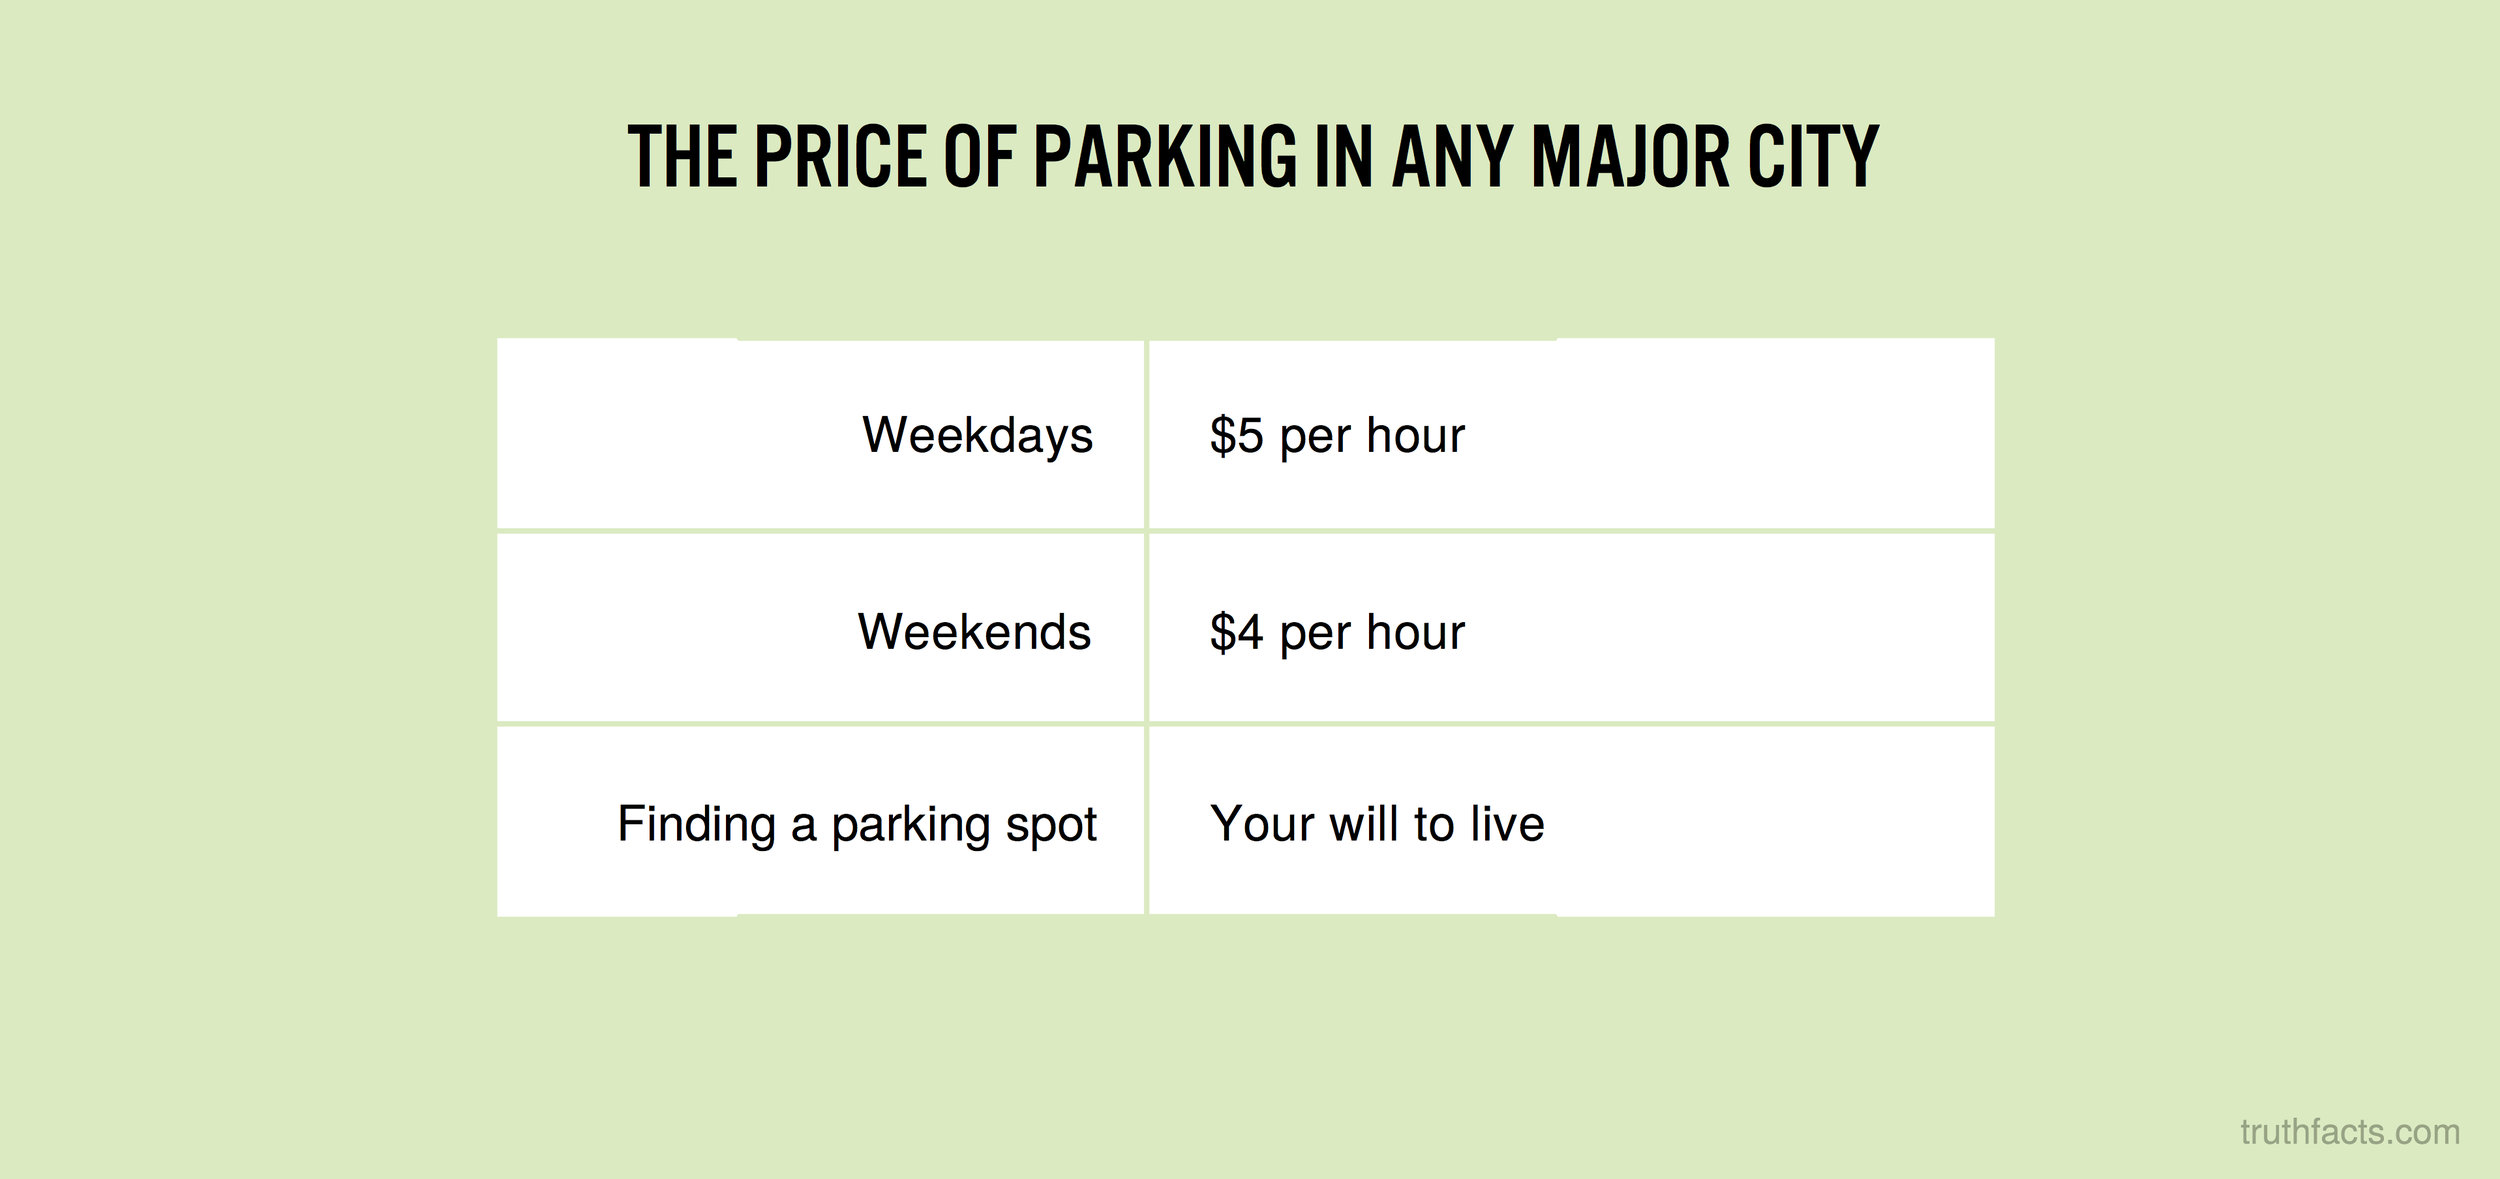 The price of parking in any major city